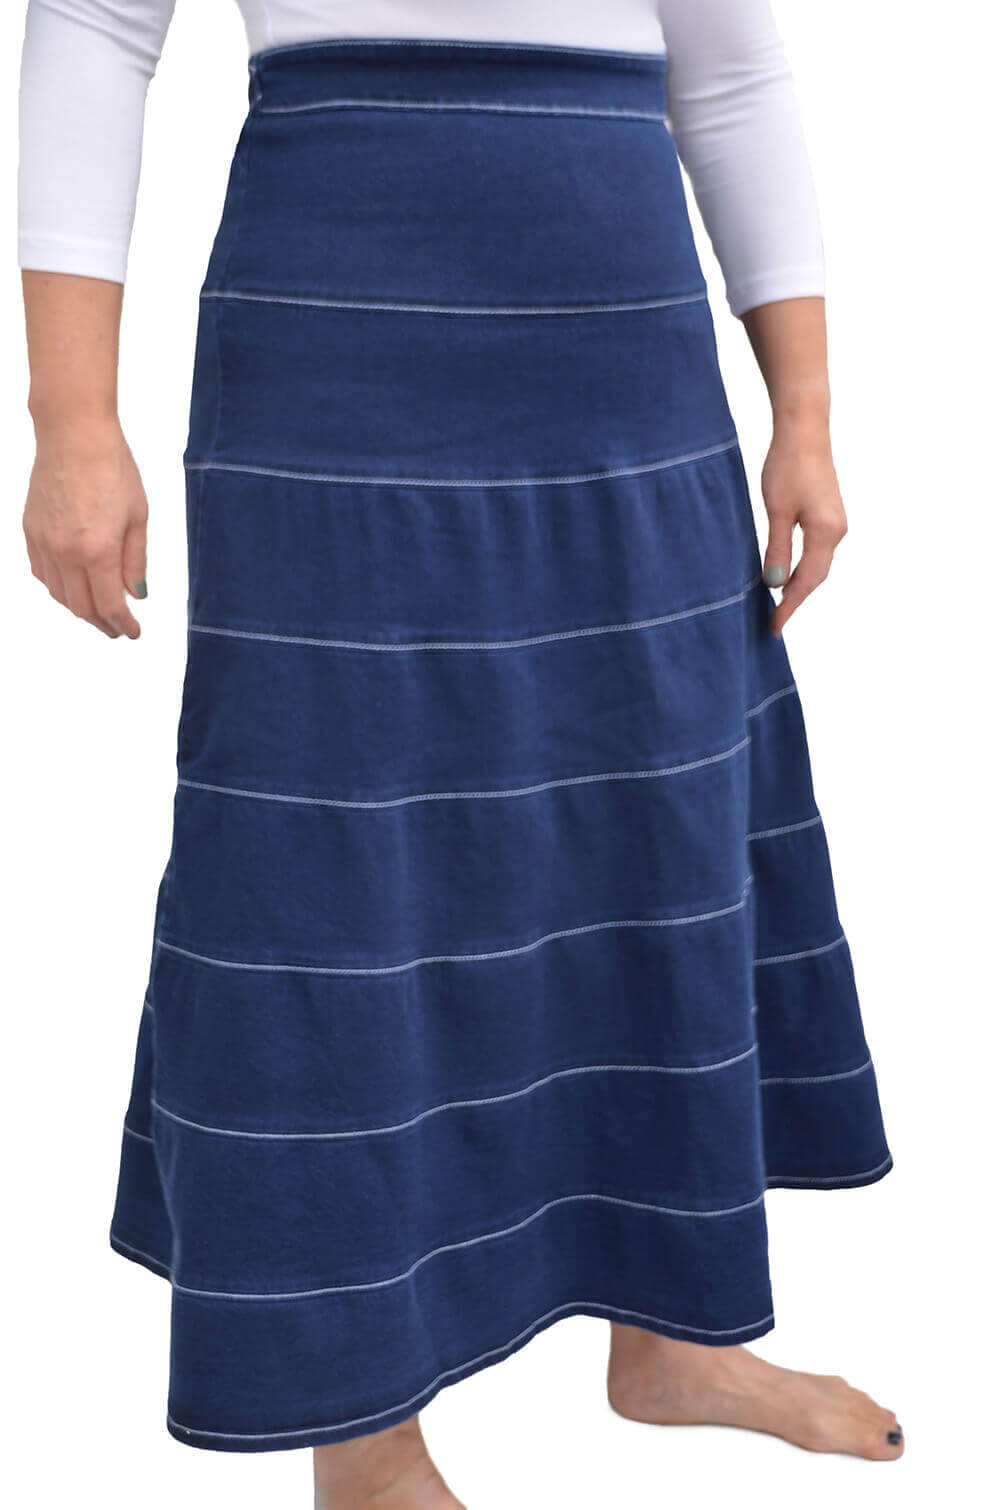 Long Denim Skirt Tiered Layers for Womens - REVISED